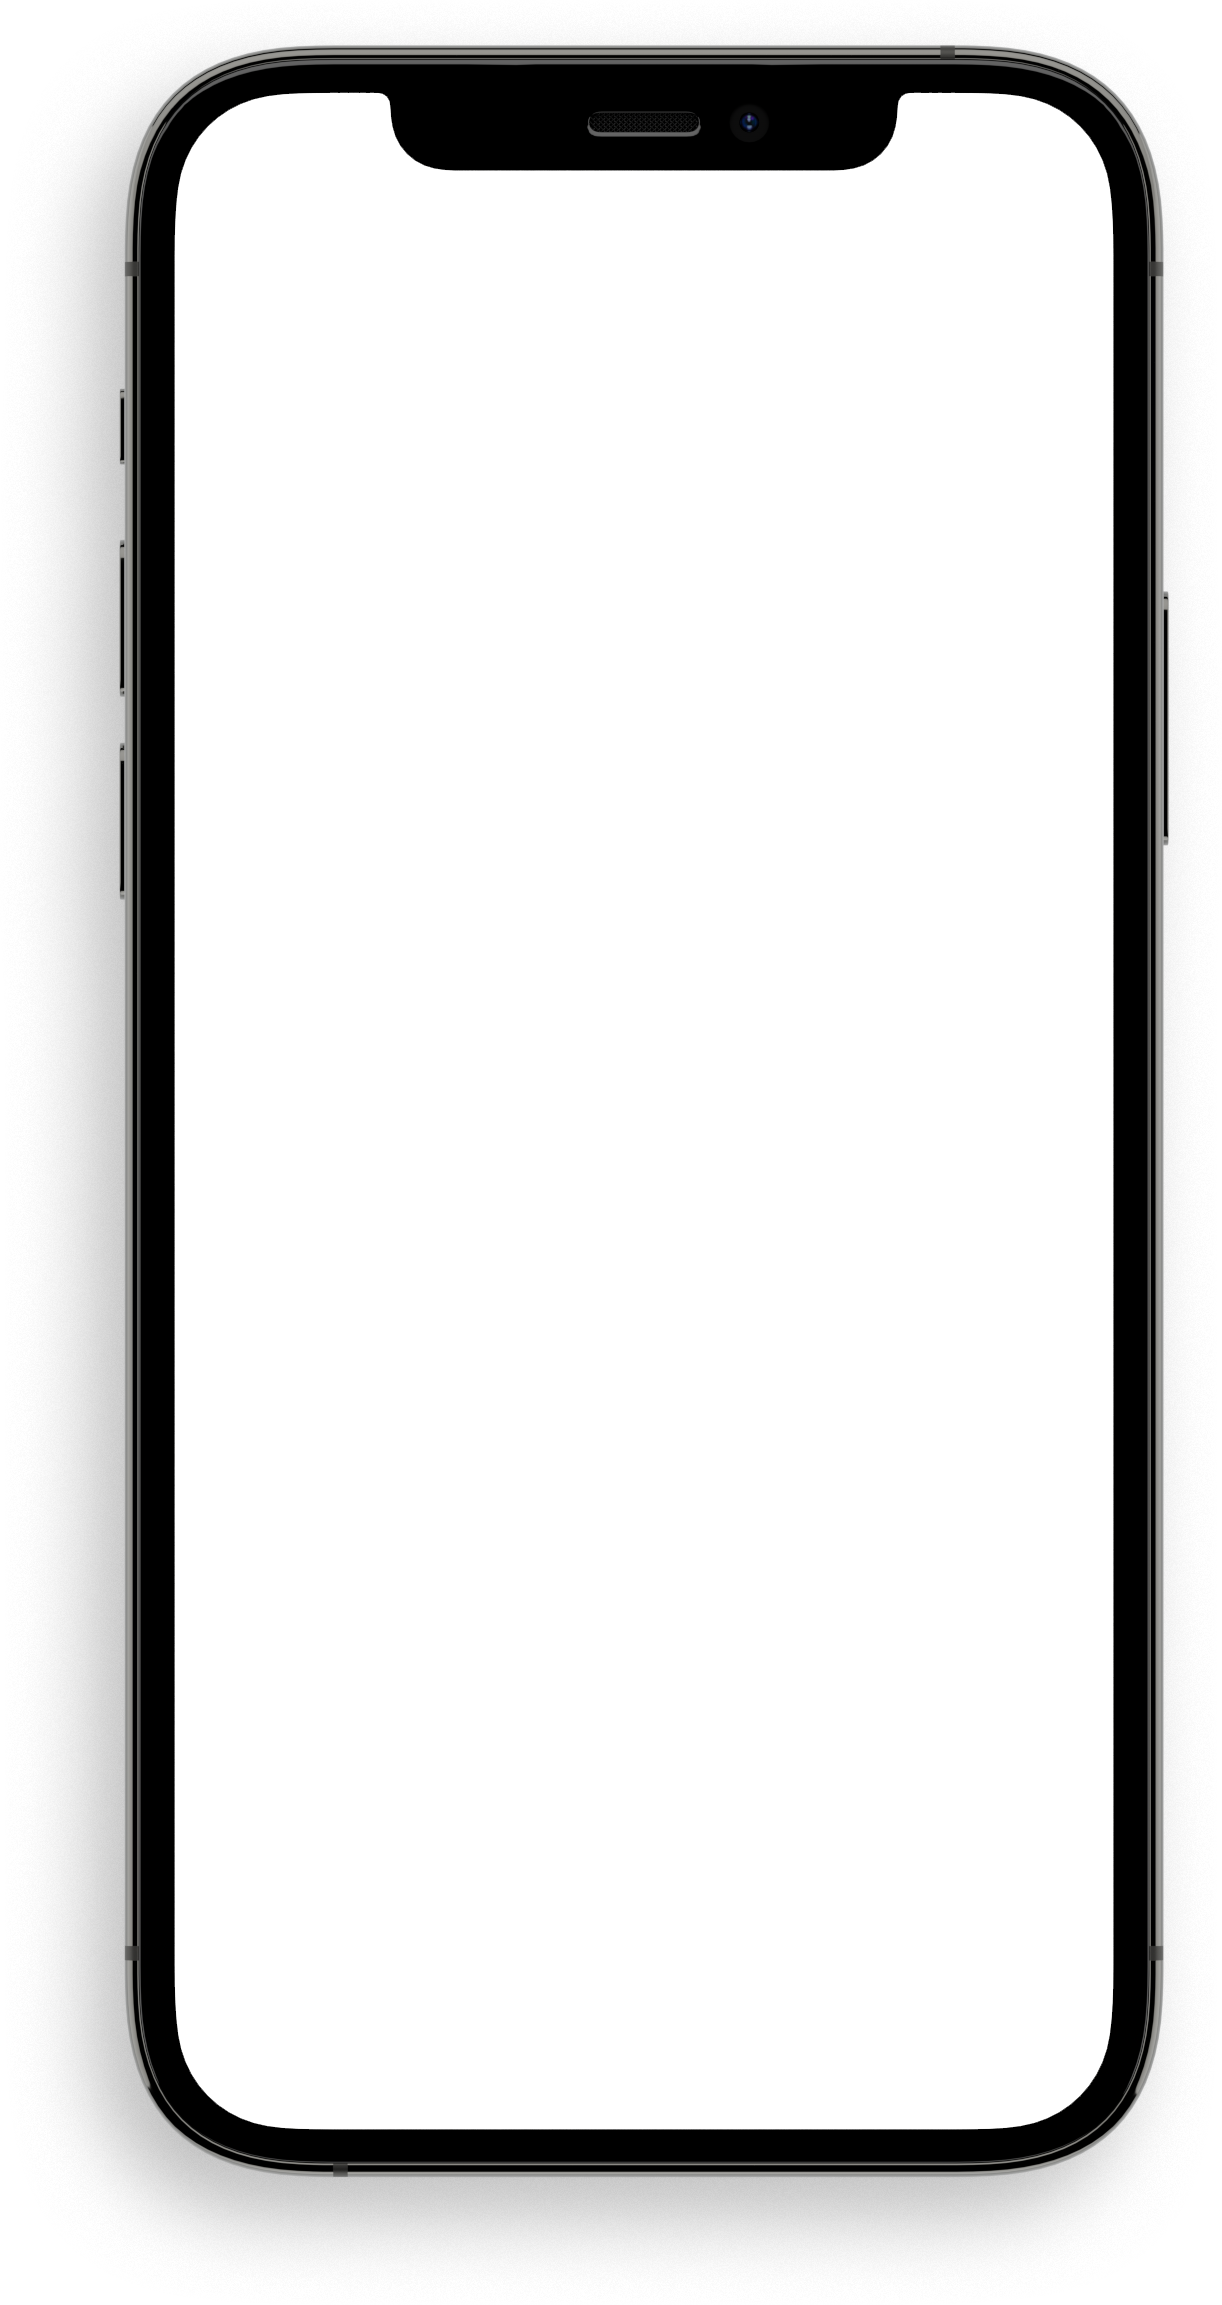 Mockup white screen02